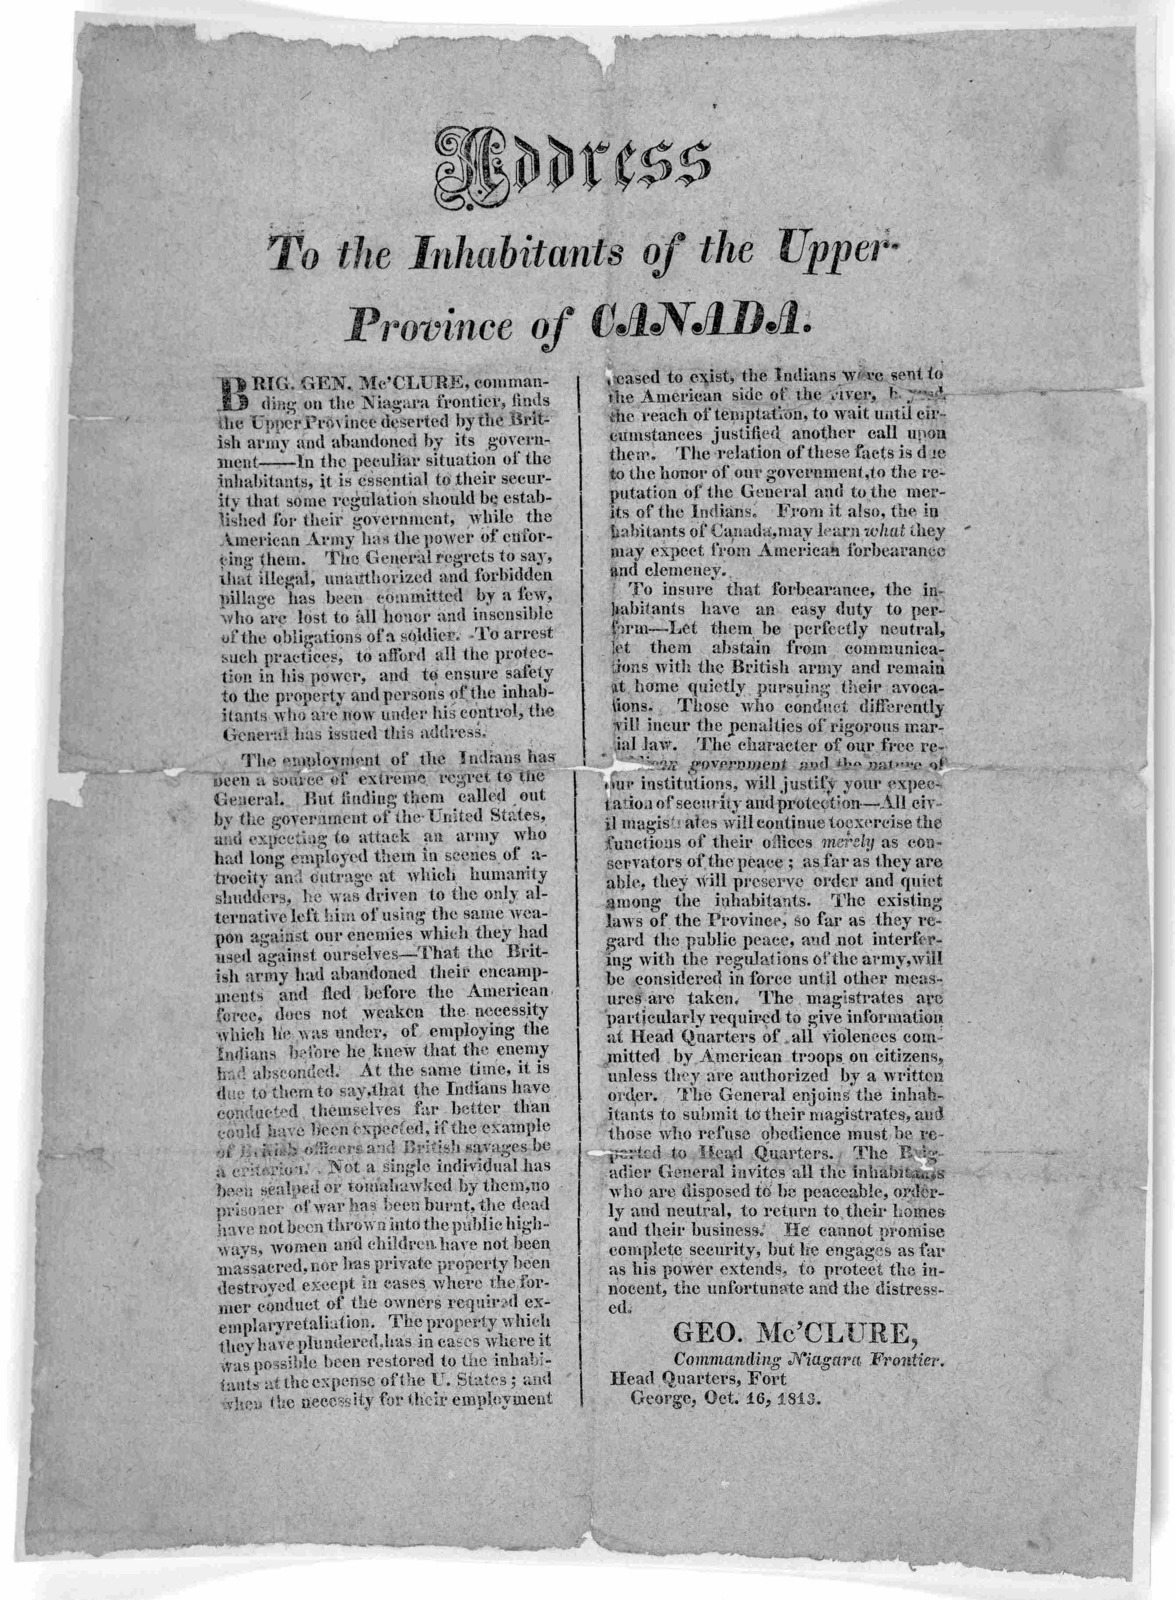 Address to the inhabitants of the Upper Province of Canada ... Geo McClure, Commanding Niagara Frontier Head Quarters, Fort George Oct. 16, 1813.